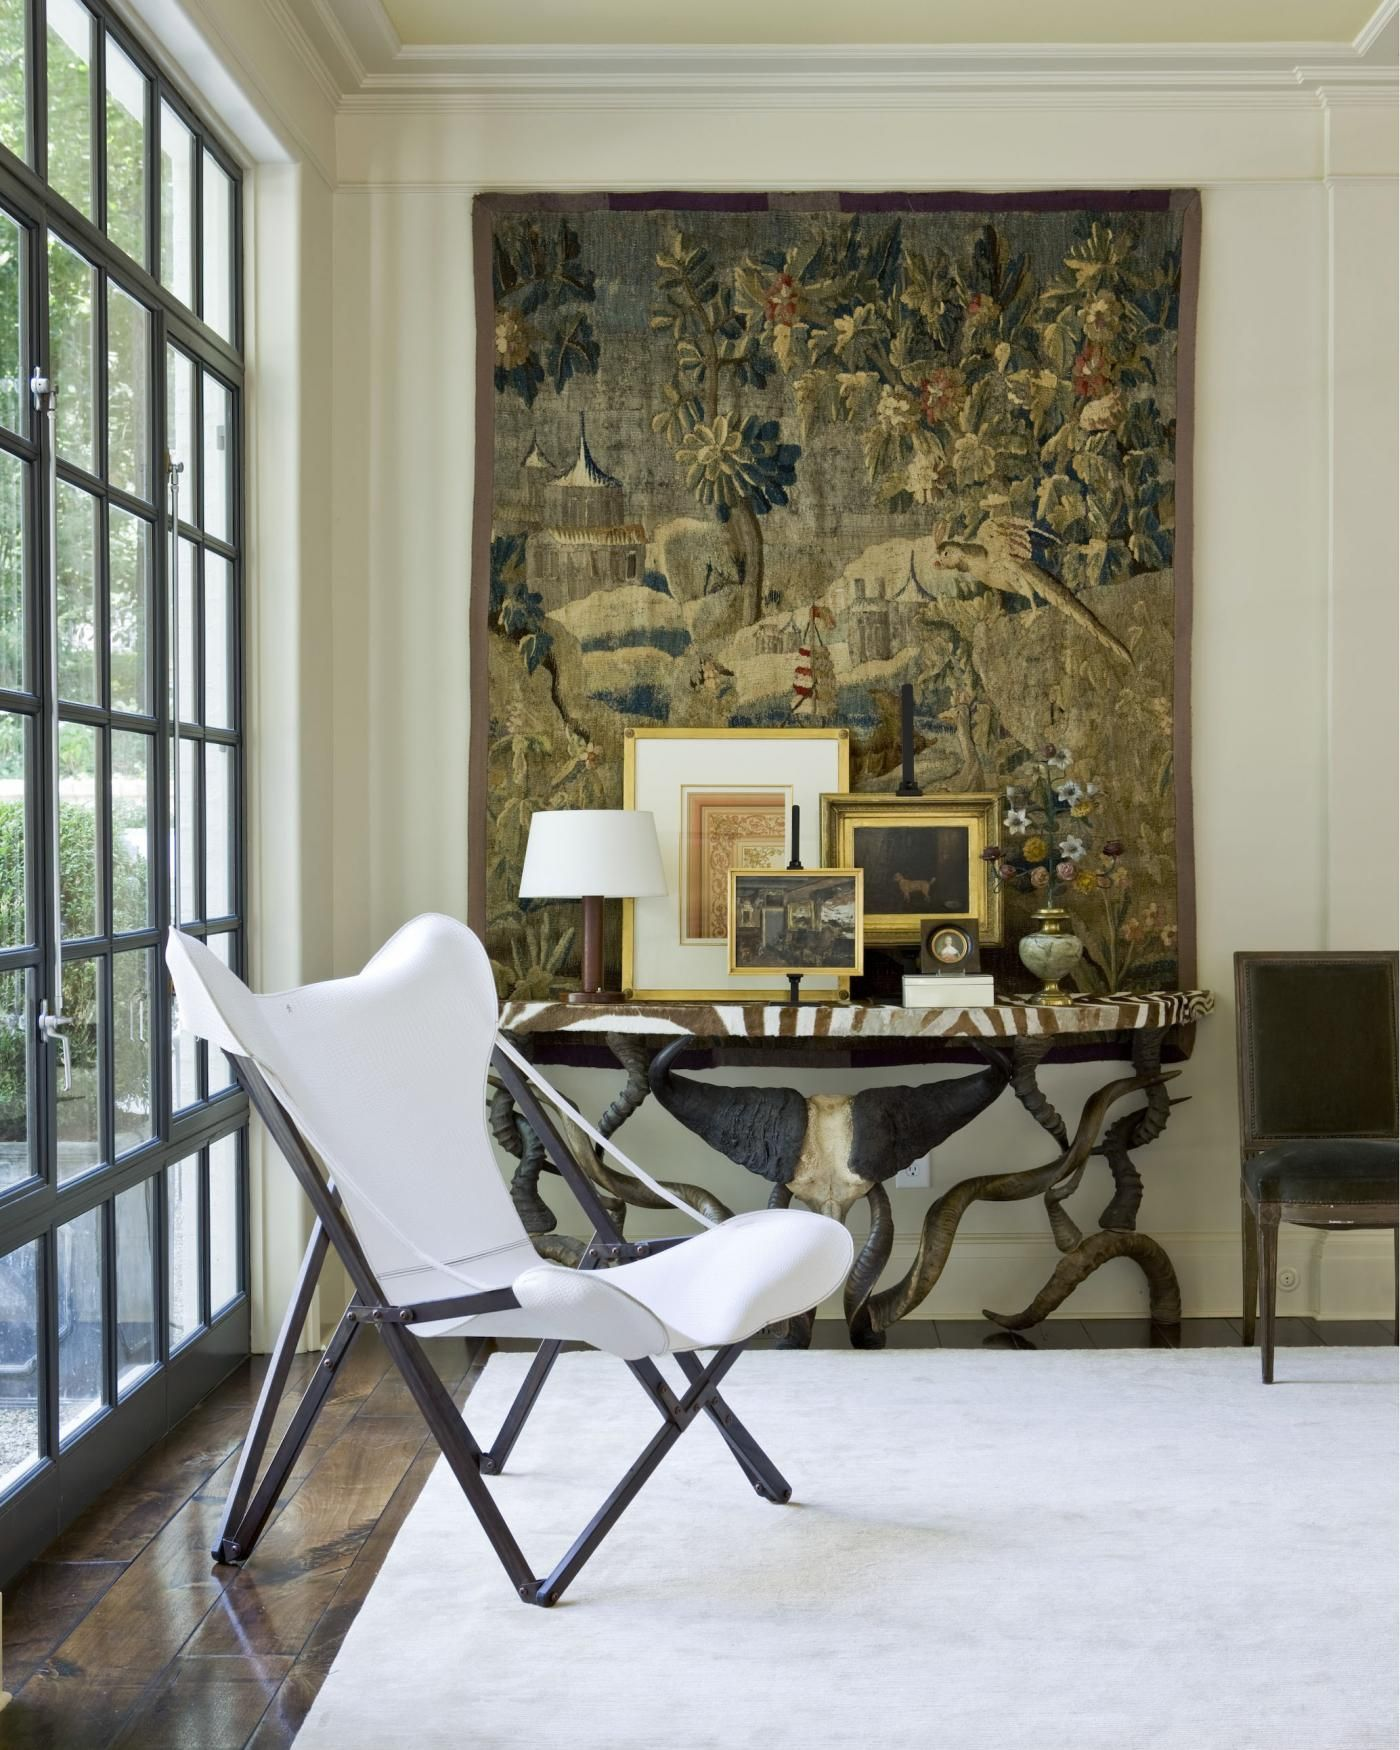 Contemporary Condo Furniture Scottsdale Az Contemporary: Antique Tapestry, Modern, Sleek Room And White And Black